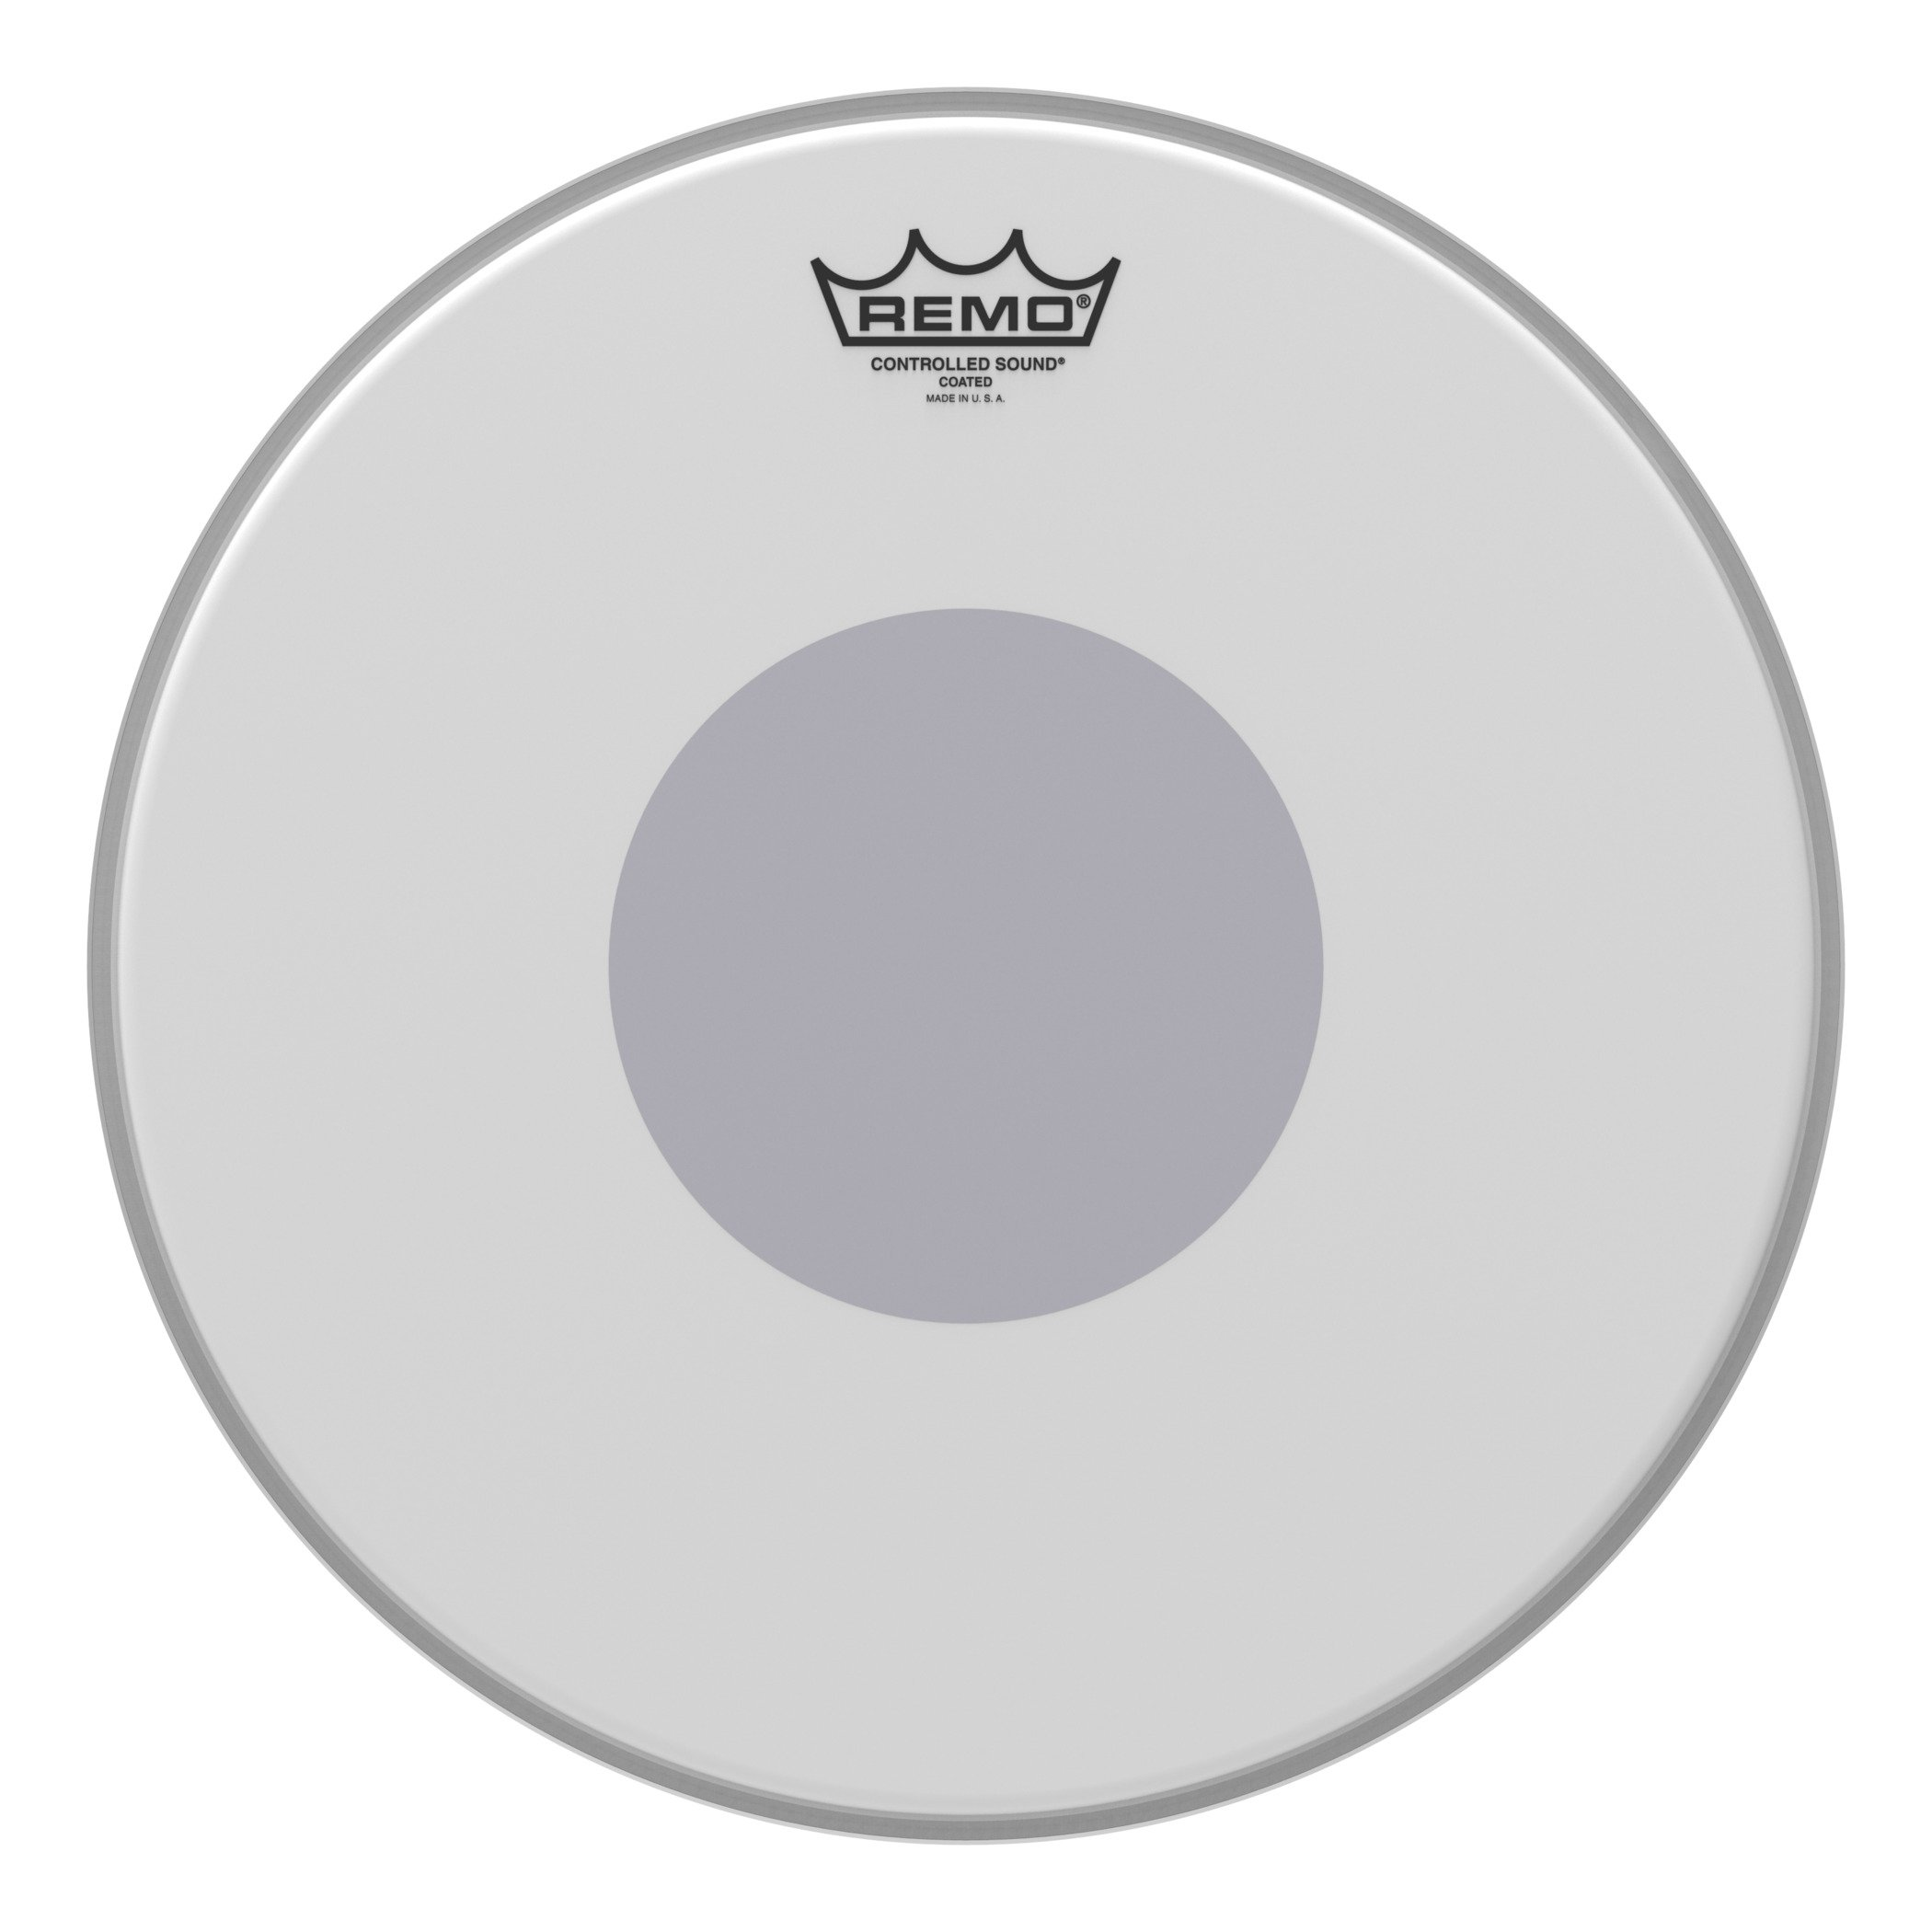 Remo Controlled Sound Coated Drum Head with Reverse Black Dot - 14 Inch